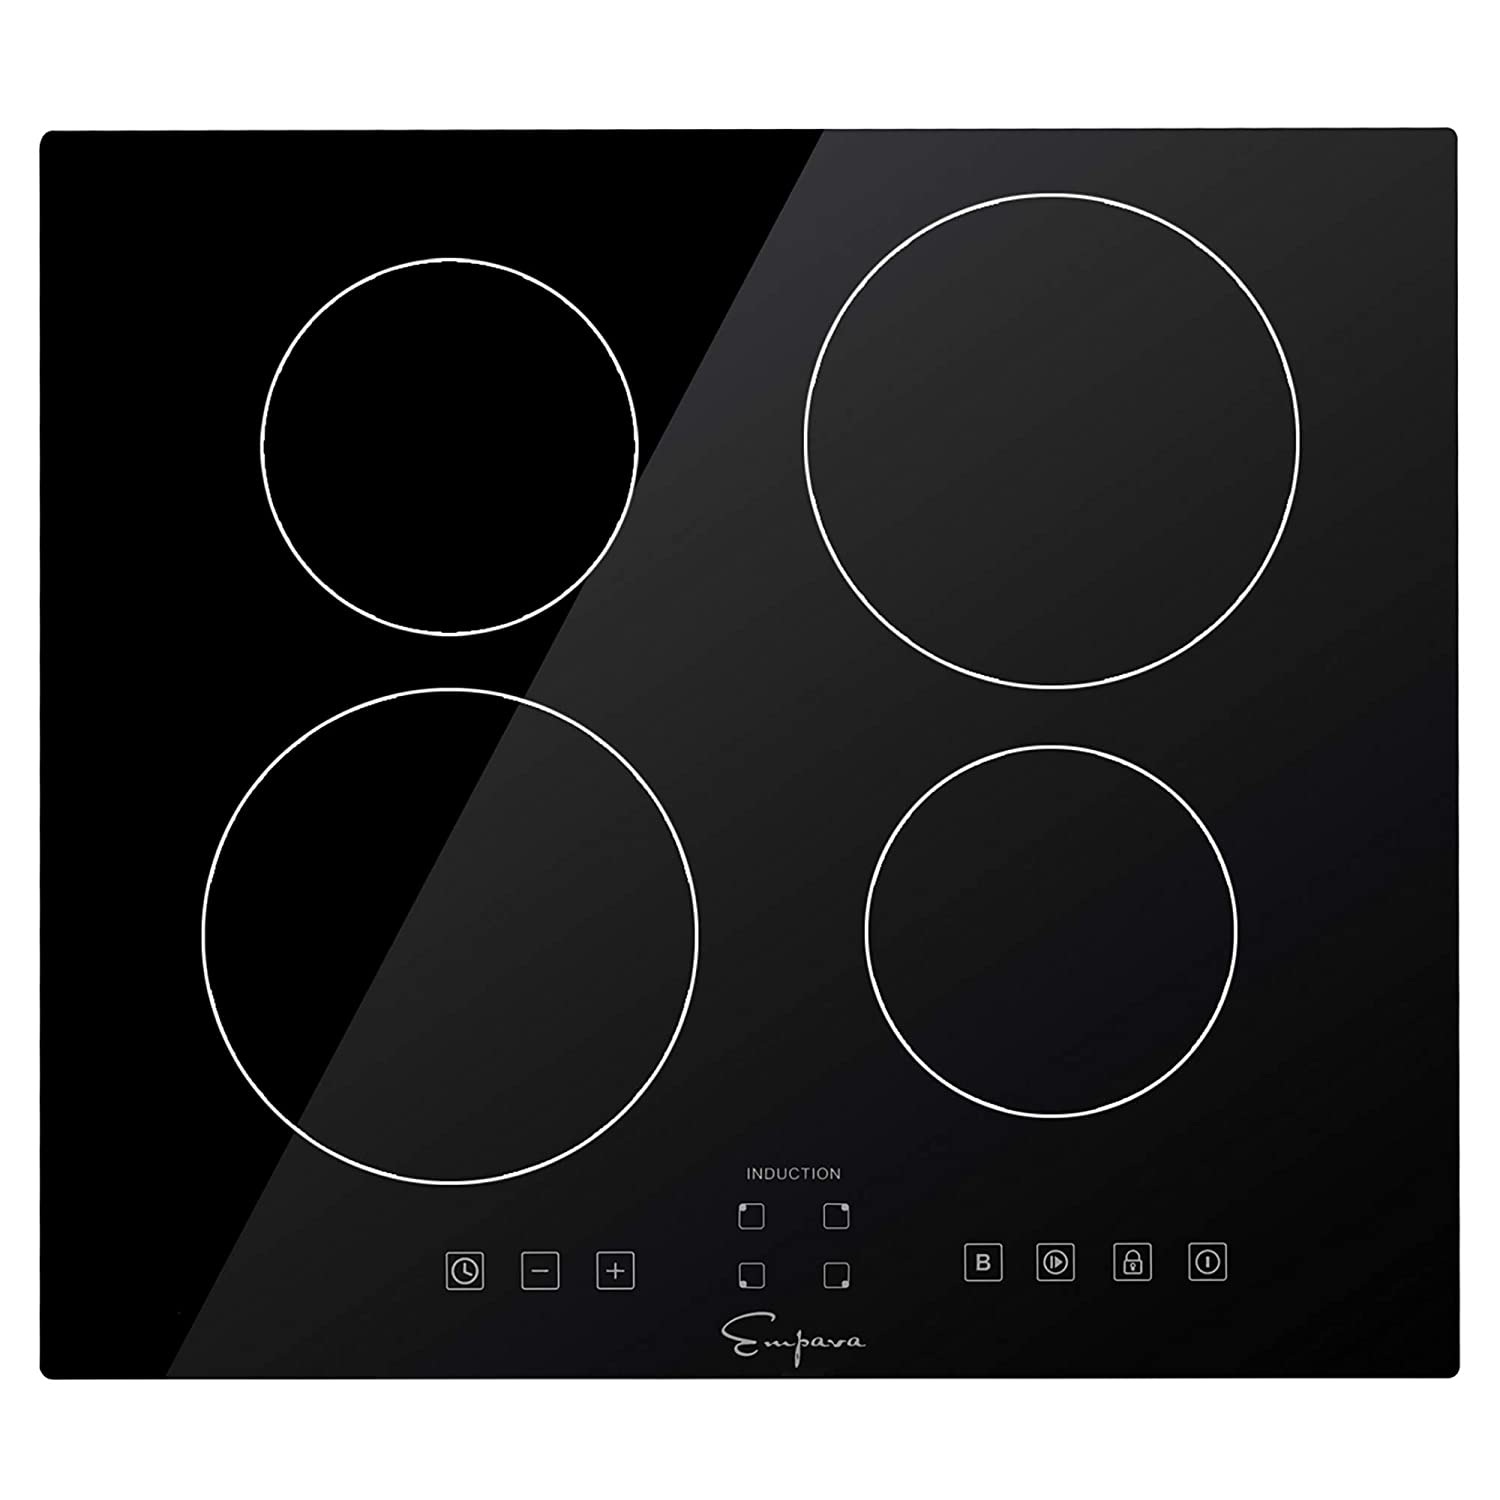 "Empava IDCX24 24"" Electric Stove Induction Cooktop with 4 Power Boost Burners Smooth Surface Vitro Ceramic Glass 240V, 24 Inch, Black"